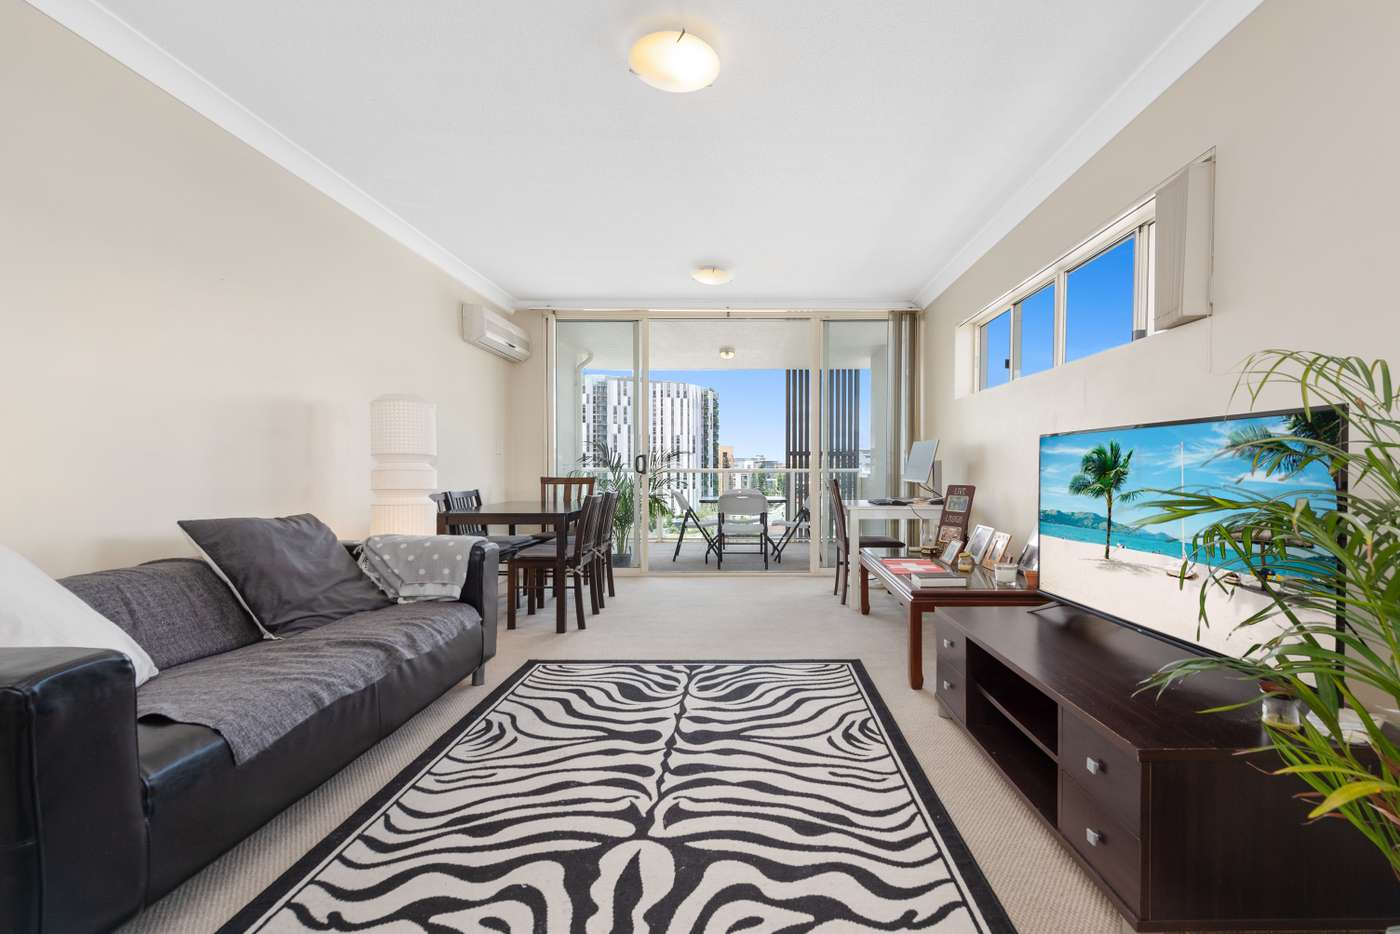 Main view of Homely apartment listing, 15/50 High Street, Toowong QLD 4066